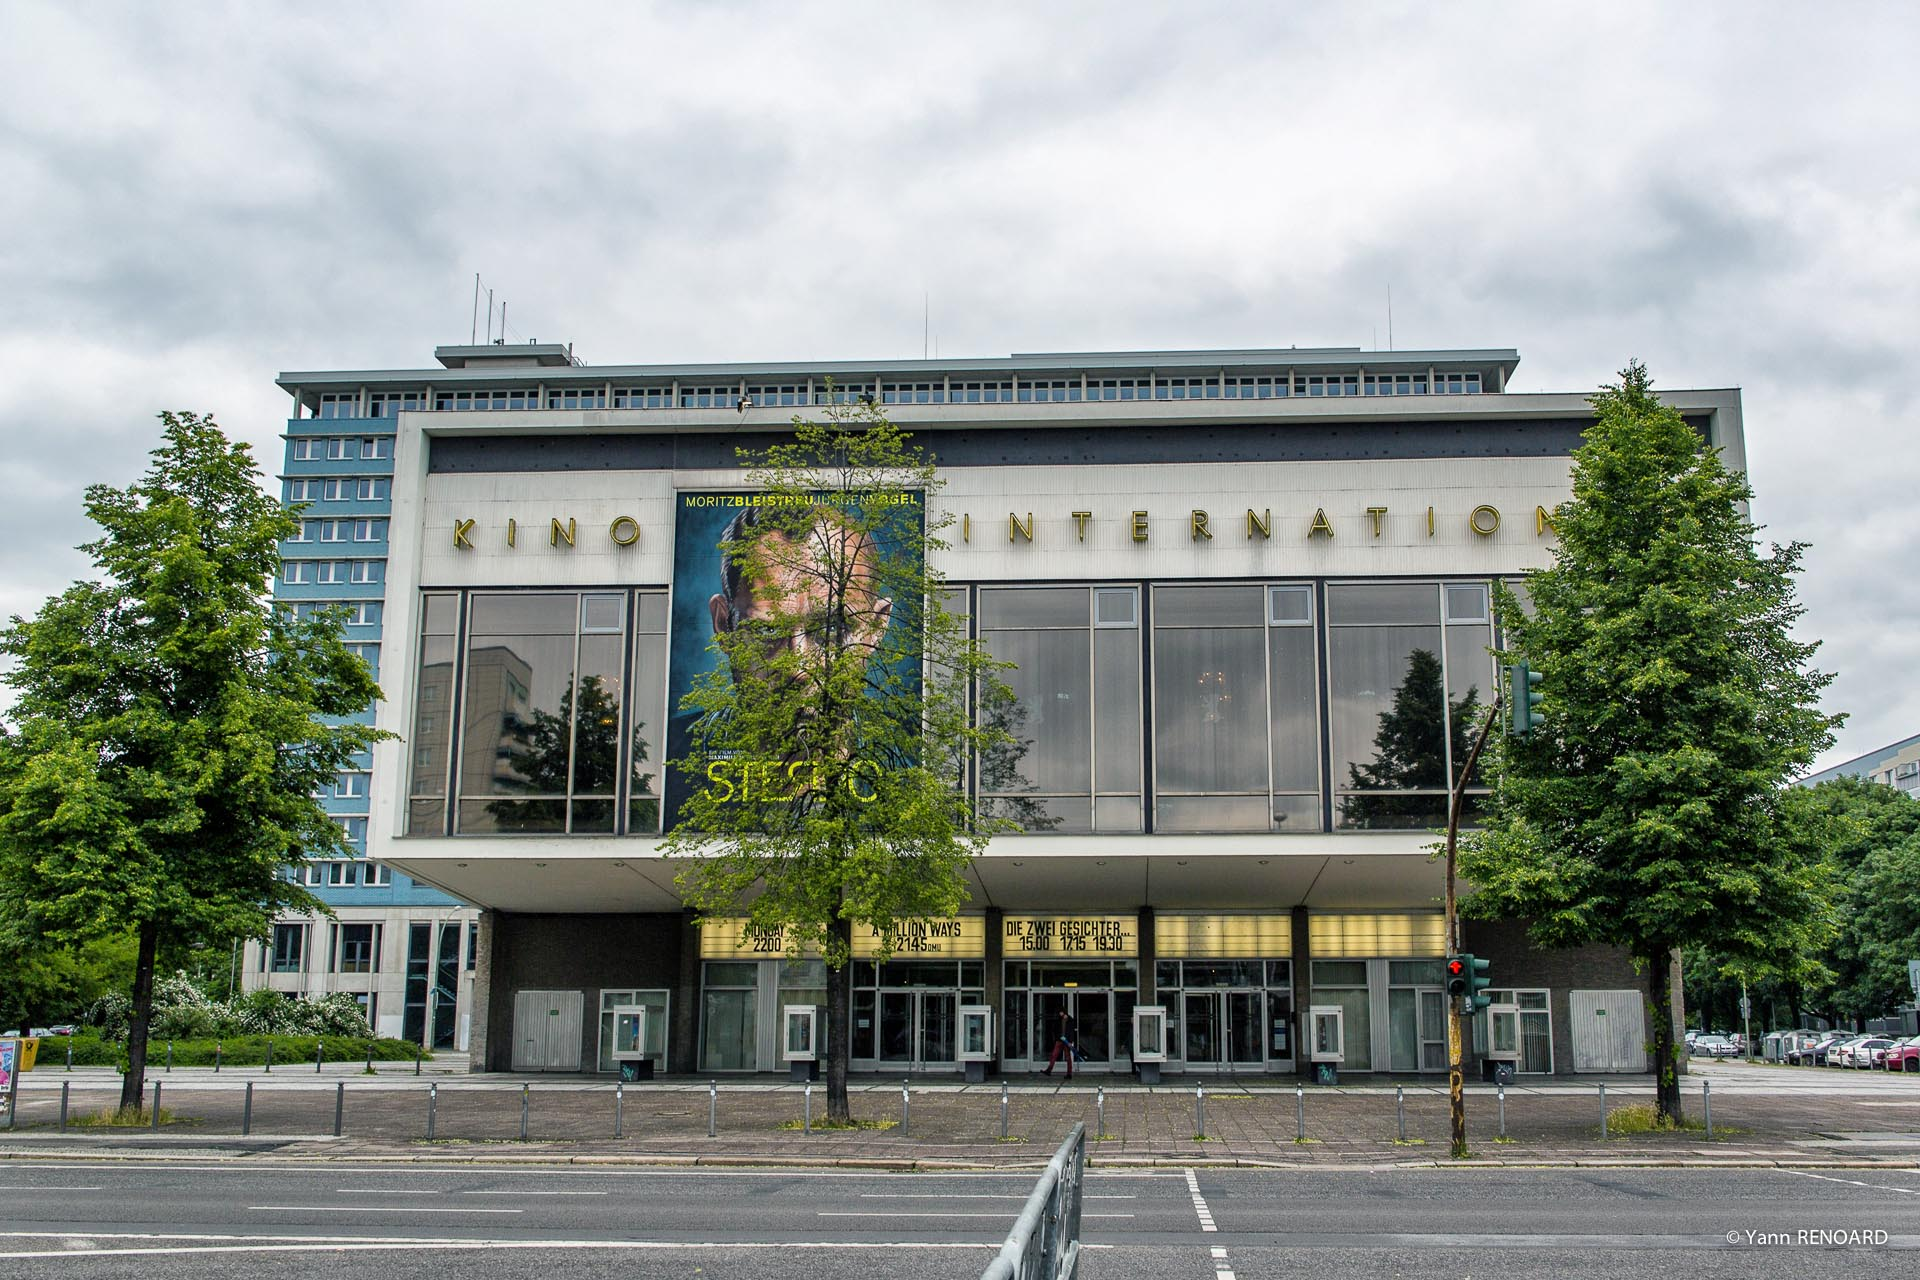 Kino International am Karl-Marx-Allee (Berlin)